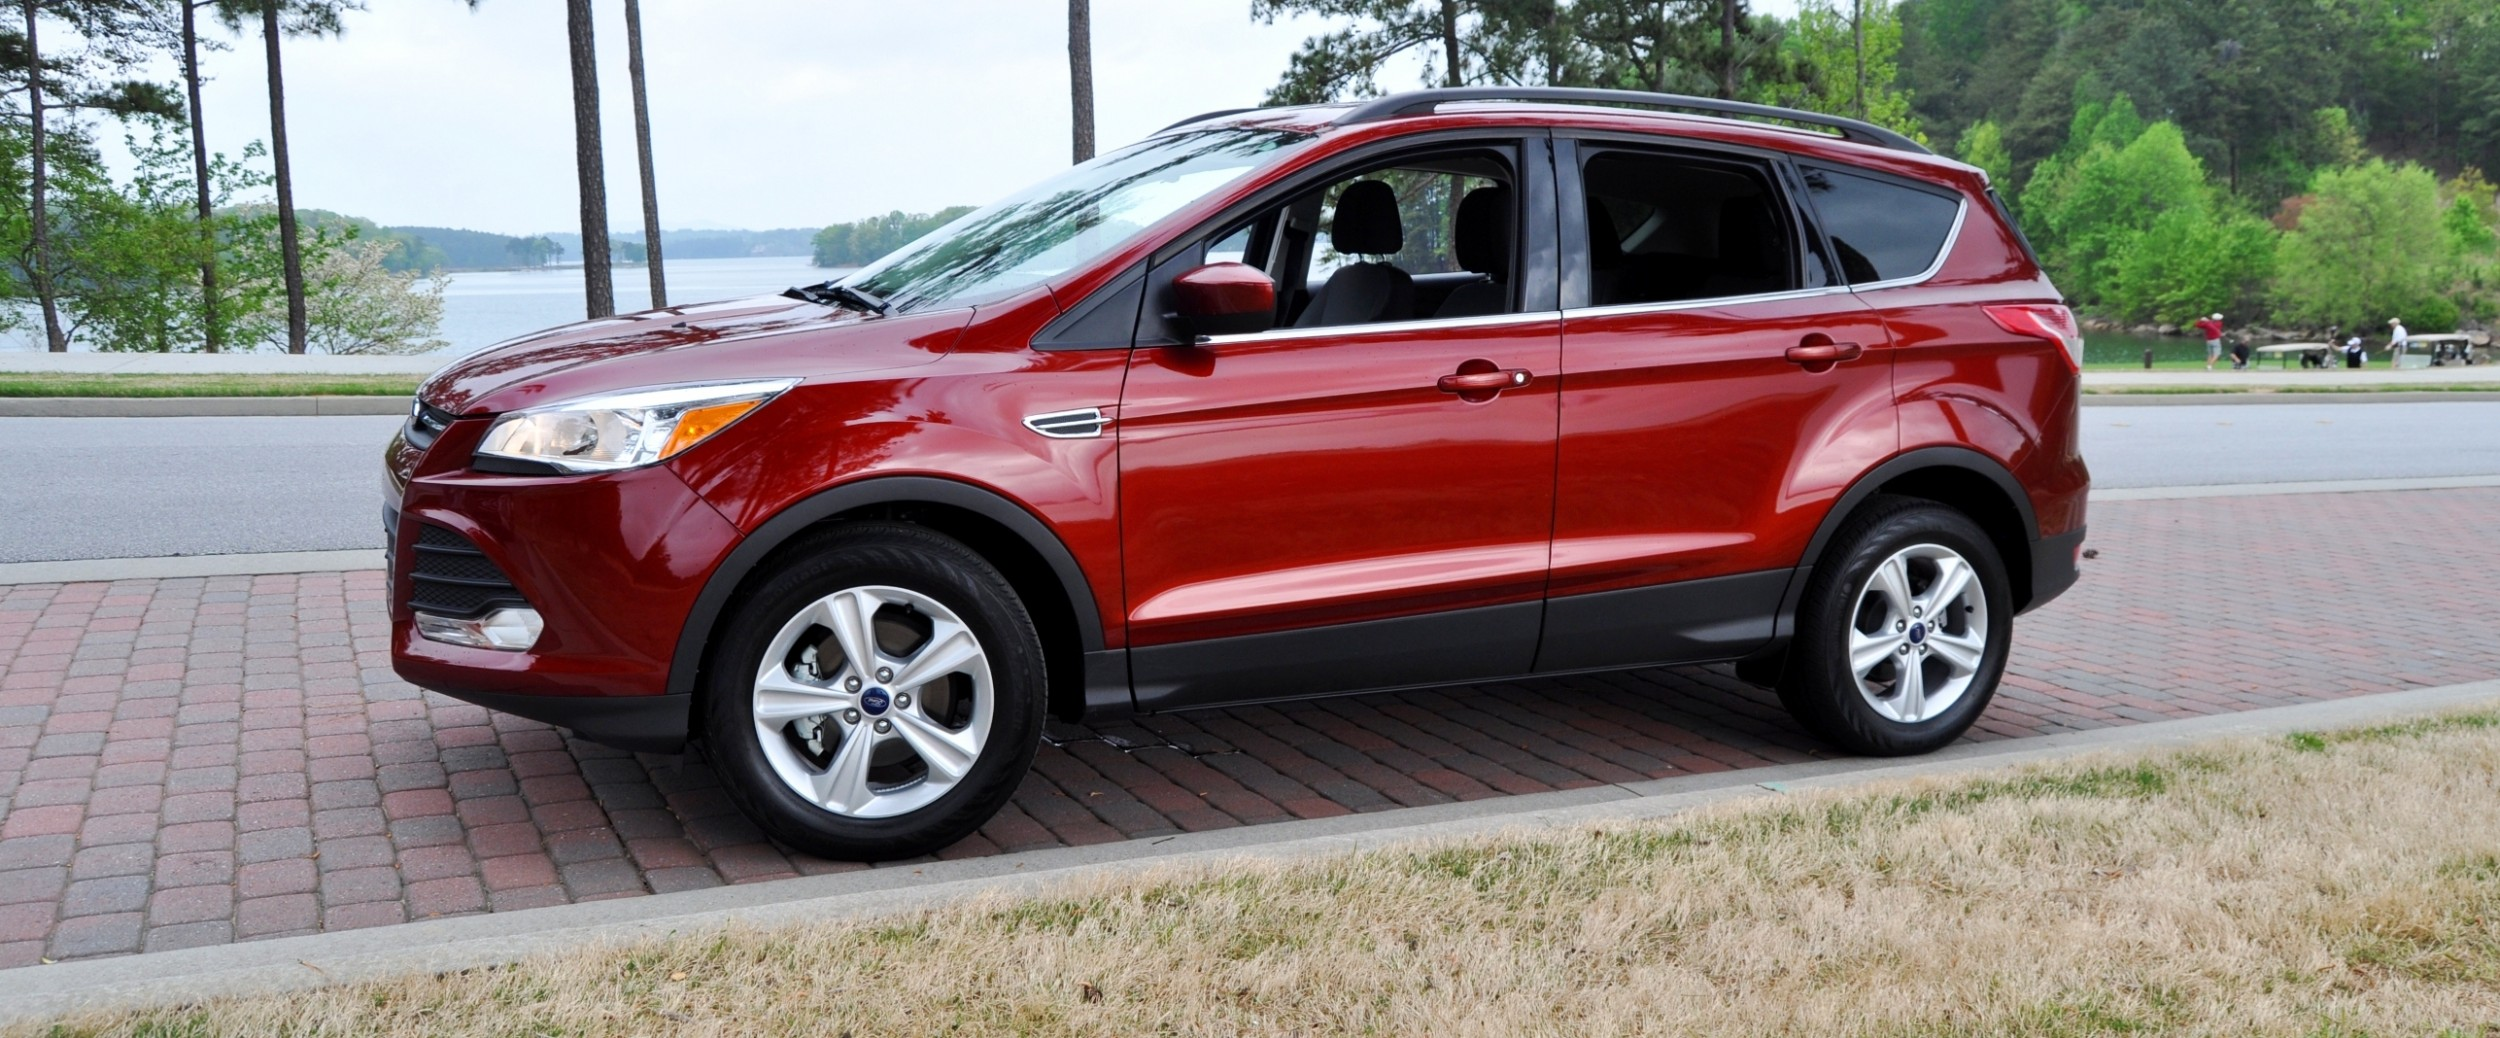 road test review 2014 ford escape se 1 6 ecoboost. Black Bedroom Furniture Sets. Home Design Ideas